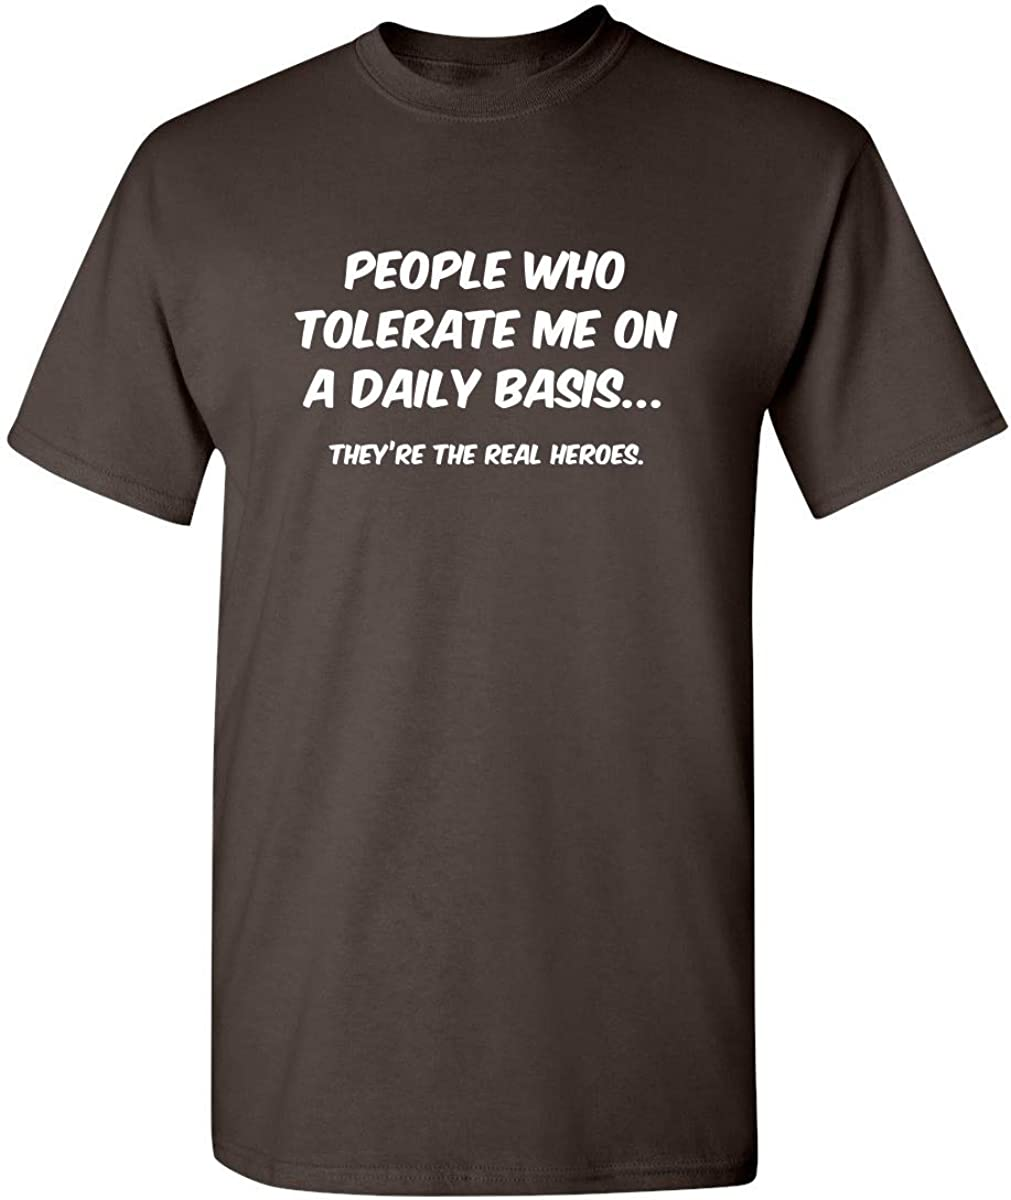 People Who Tolerate Me On A Daily Basis Sarcastic Graphic Novelty Funny T Shirt